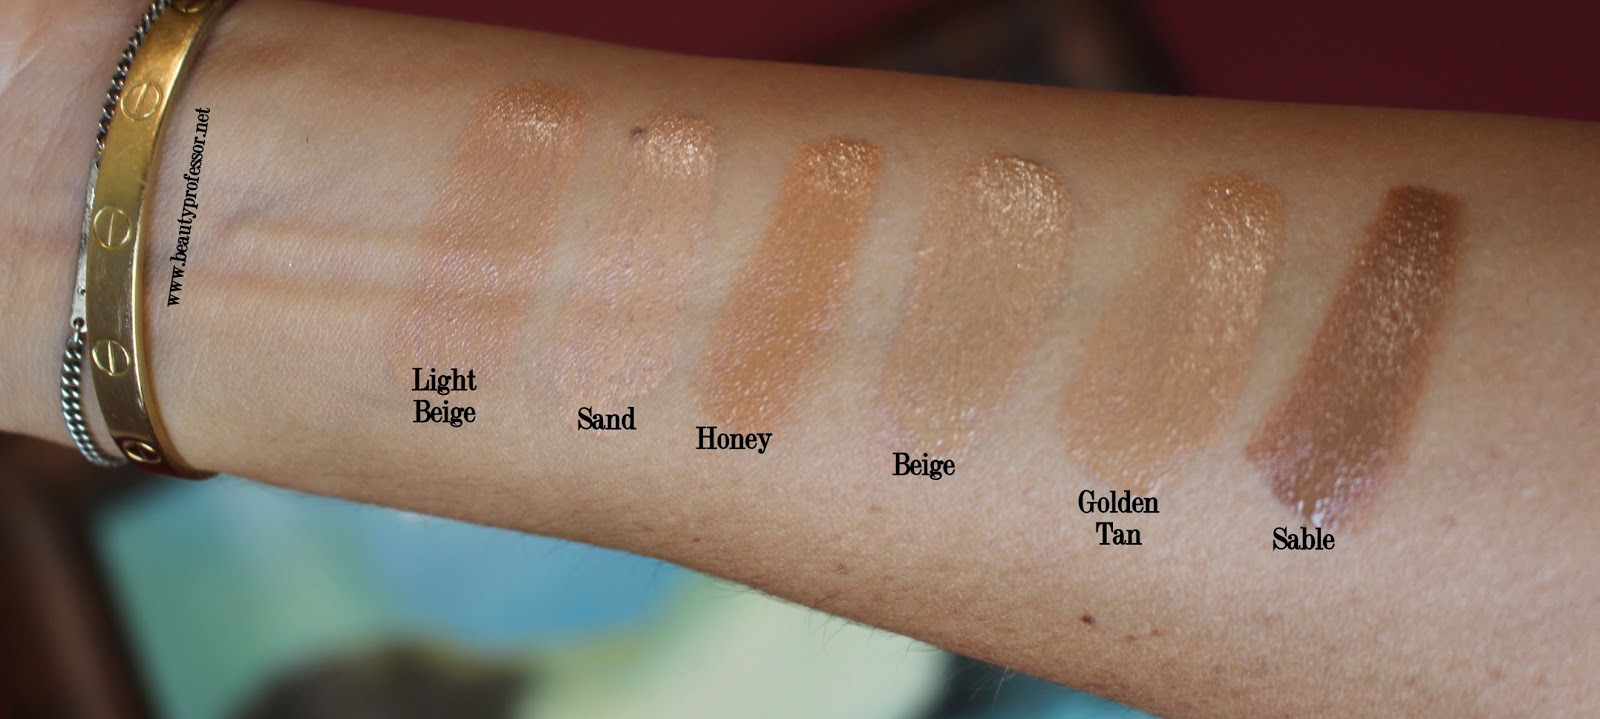 Illusion Hyaluronic Skin Tint by Hourglass #15